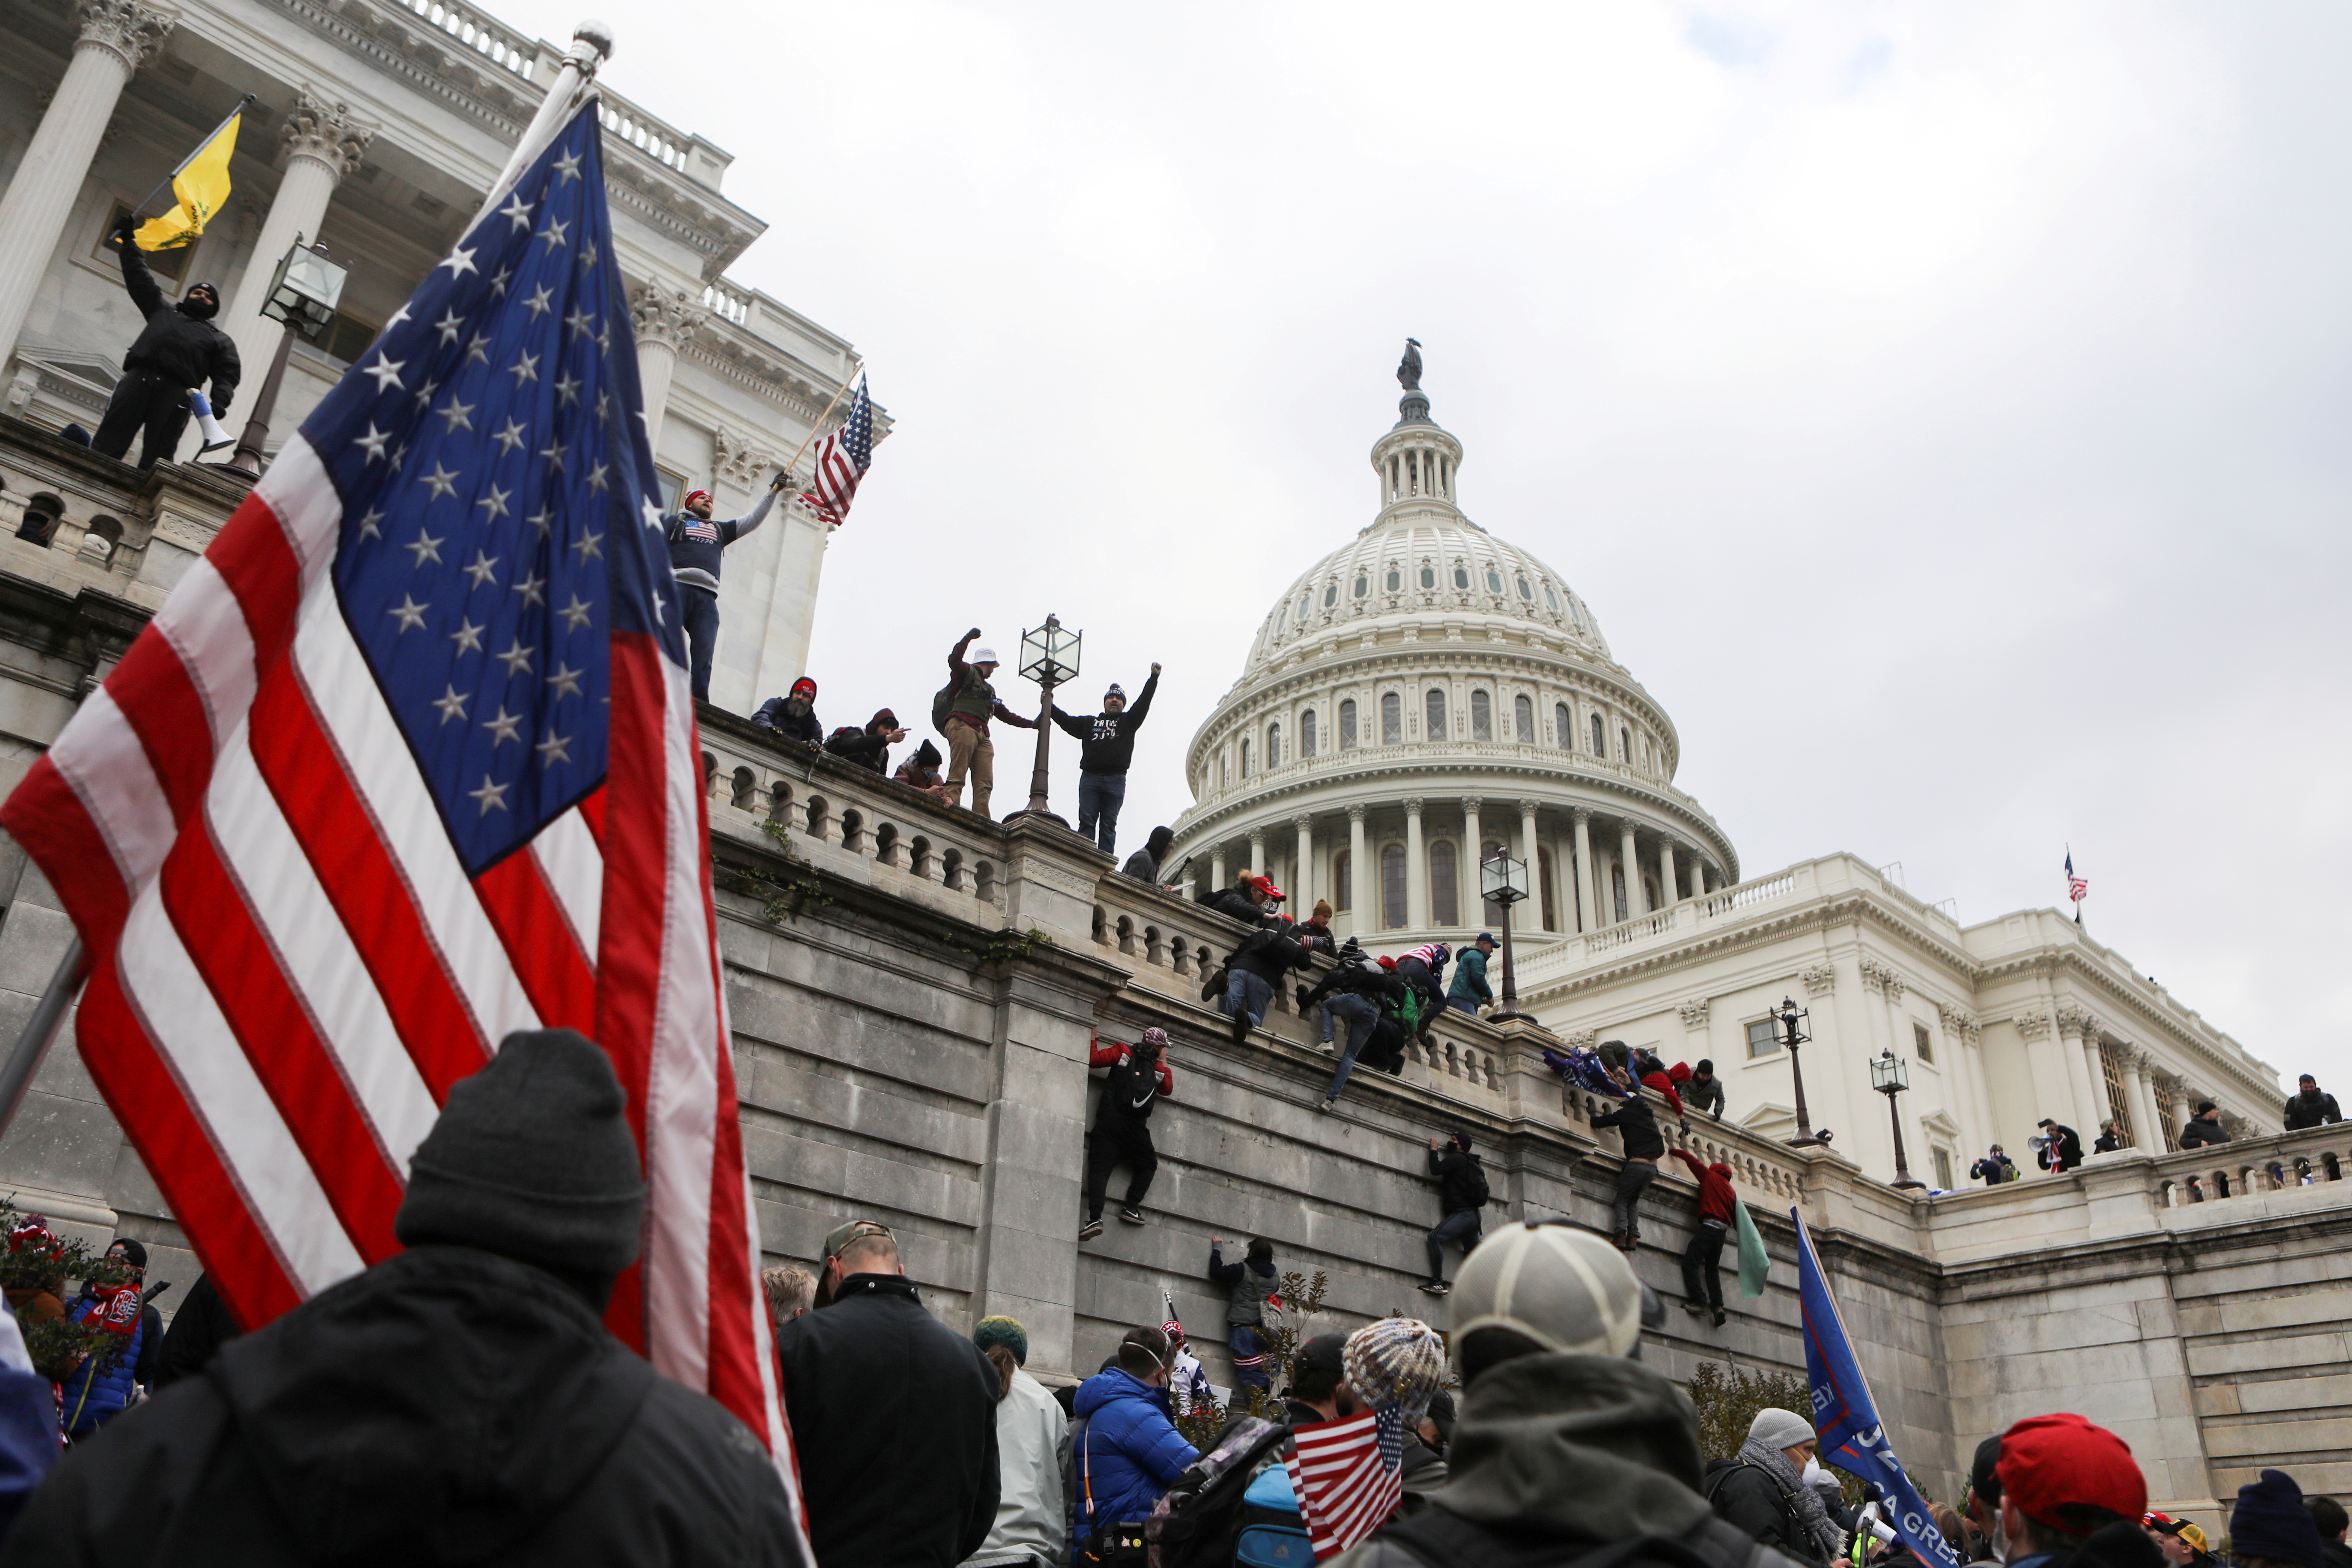 Supporters of U.S. President Donald Trump climb on walls at the U.S. Capitol during a protest against the certification of the 2020 U.S. presidential election results by the U.S. Congress, in Washington, U.S., January 6, 2021. REUTERS/Jim Urquhart/File Photo